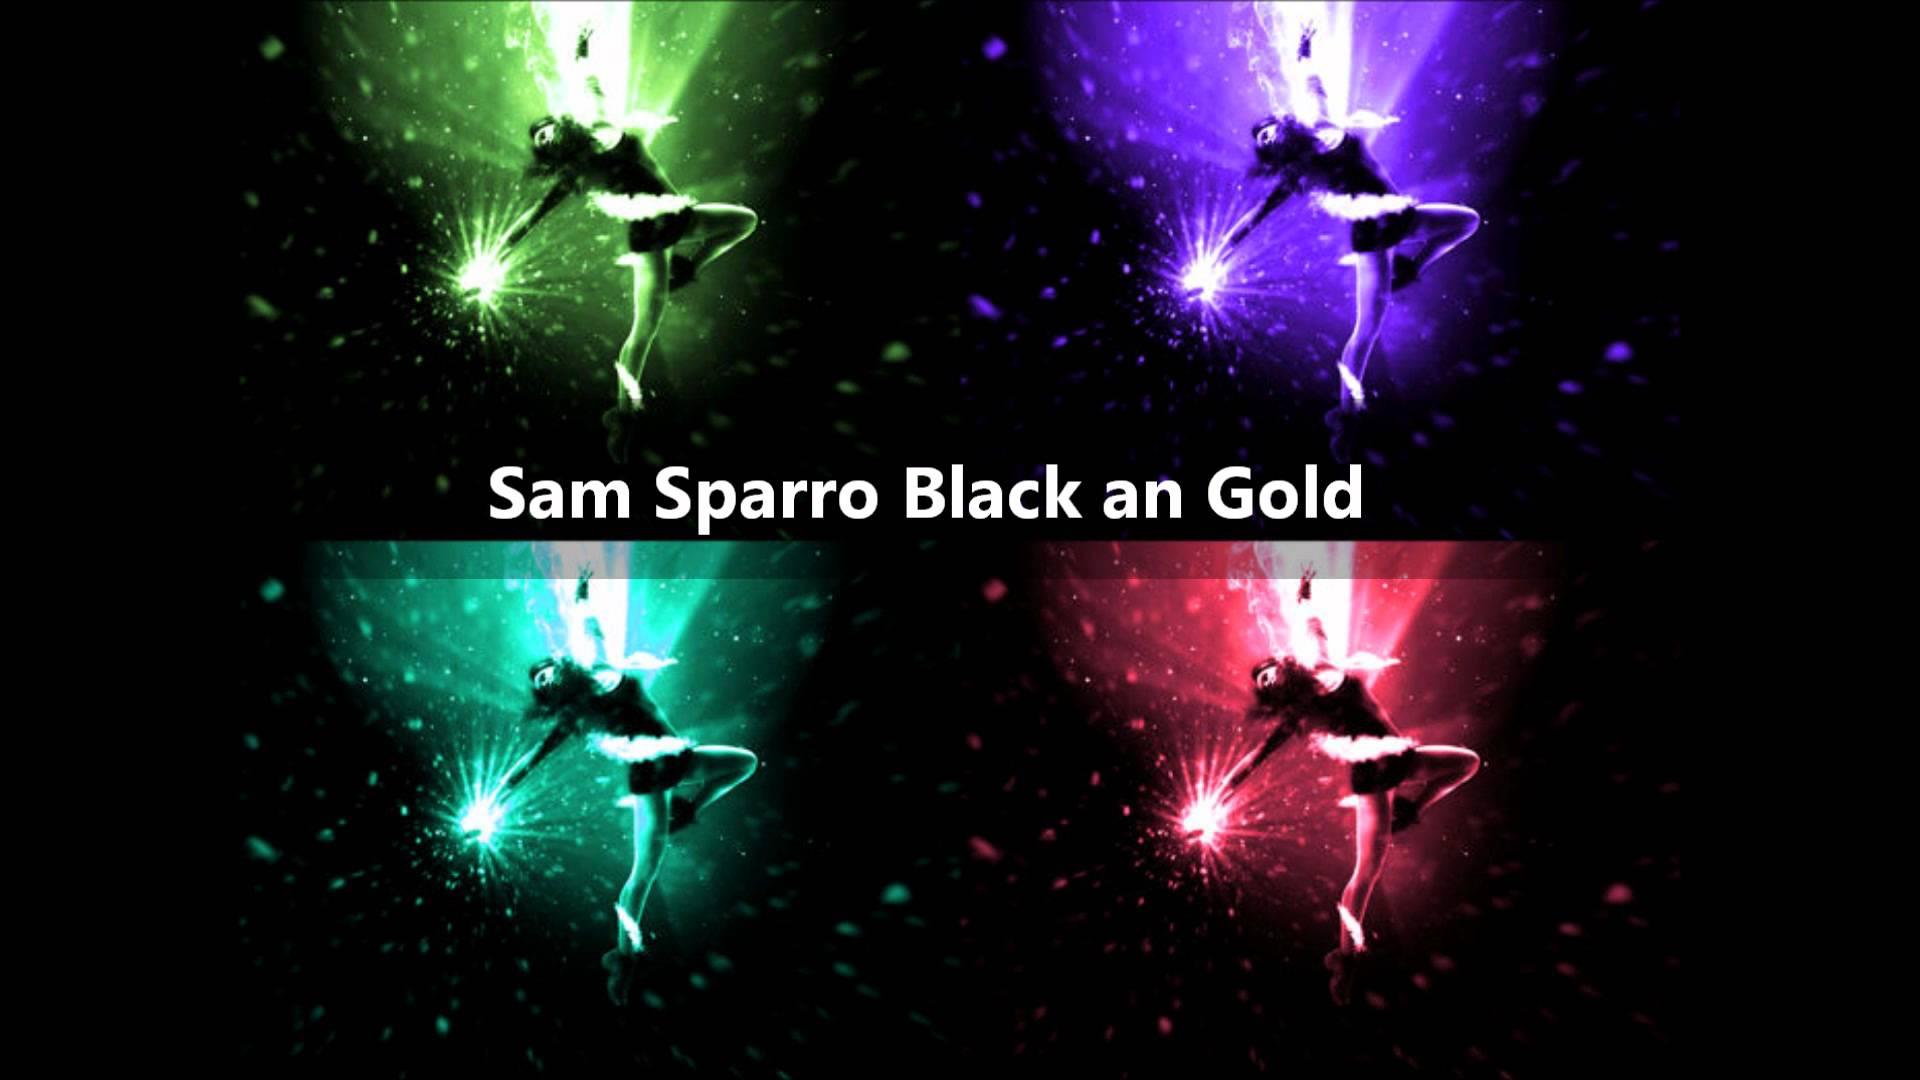 Black And Gold Sam Sparro 36 Wide Wallpaper